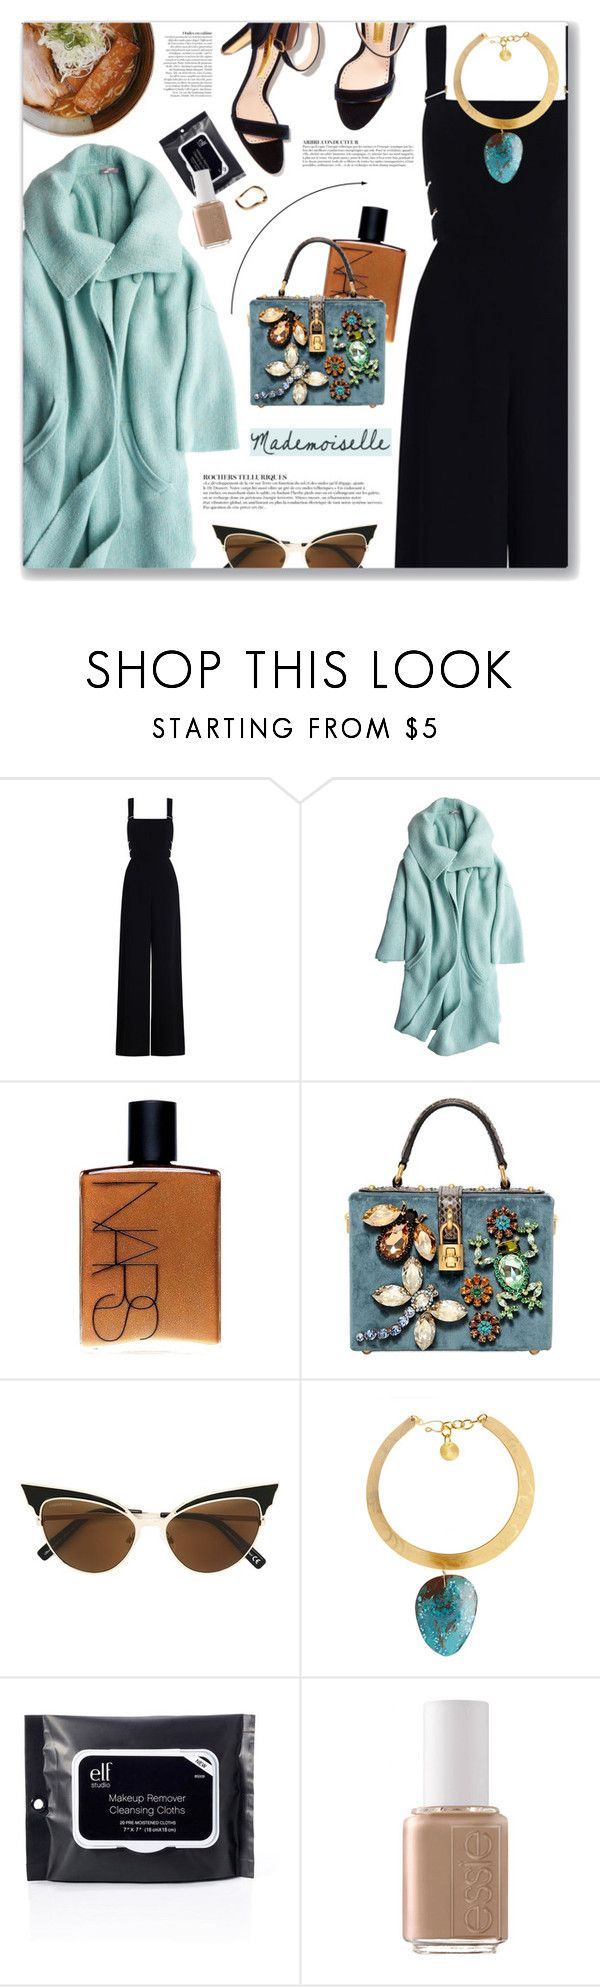 """""""7 Years, Lukas Graham"""" by blendasantos ❤ liked on Polyvore featuring Zimmermann, Calypso St. Barth, NARS Cosmetics, Dolce&Gabbana, Dsquared2, Anja, Morra Designs, Essie, Charlotte Russe and oversizedcoats"""